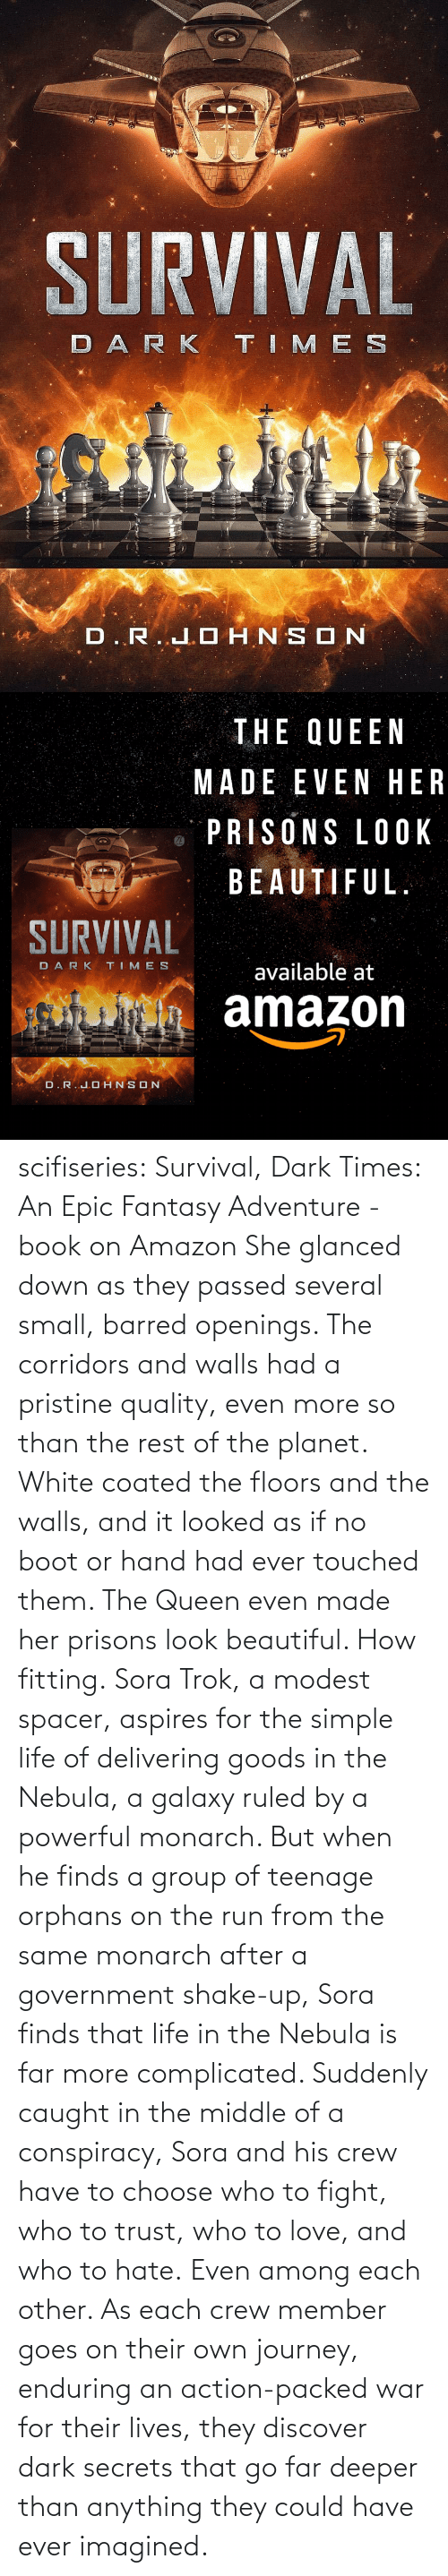 each other: scifiseries: Survival, Dark Times: An Epic Fantasy Adventure - book on Amazon  She glanced down as they  passed several small, barred openings. The corridors and walls had a  pristine quality, even more so than the rest of the planet. White coated  the floors and the walls, and it looked as if no boot or hand had ever  touched them.  The Queen even made her prisons look beautiful.  How fitting. Sora  Trok, a modest spacer, aspires for the simple life of delivering goods  in the Nebula, a galaxy ruled by a powerful monarch. But when he finds a  group of teenage orphans on the run from the same monarch after a  government shake-up, Sora finds that life in the Nebula is far more complicated.  Suddenly  caught in the middle of a conspiracy, Sora and his crew have to choose  who to fight, who to trust, who to love, and who to hate. Even among each other.  As  each crew member goes on their own journey, enduring an action-packed  war for their lives, they discover dark secrets that go far deeper than  anything they could have ever imagined.